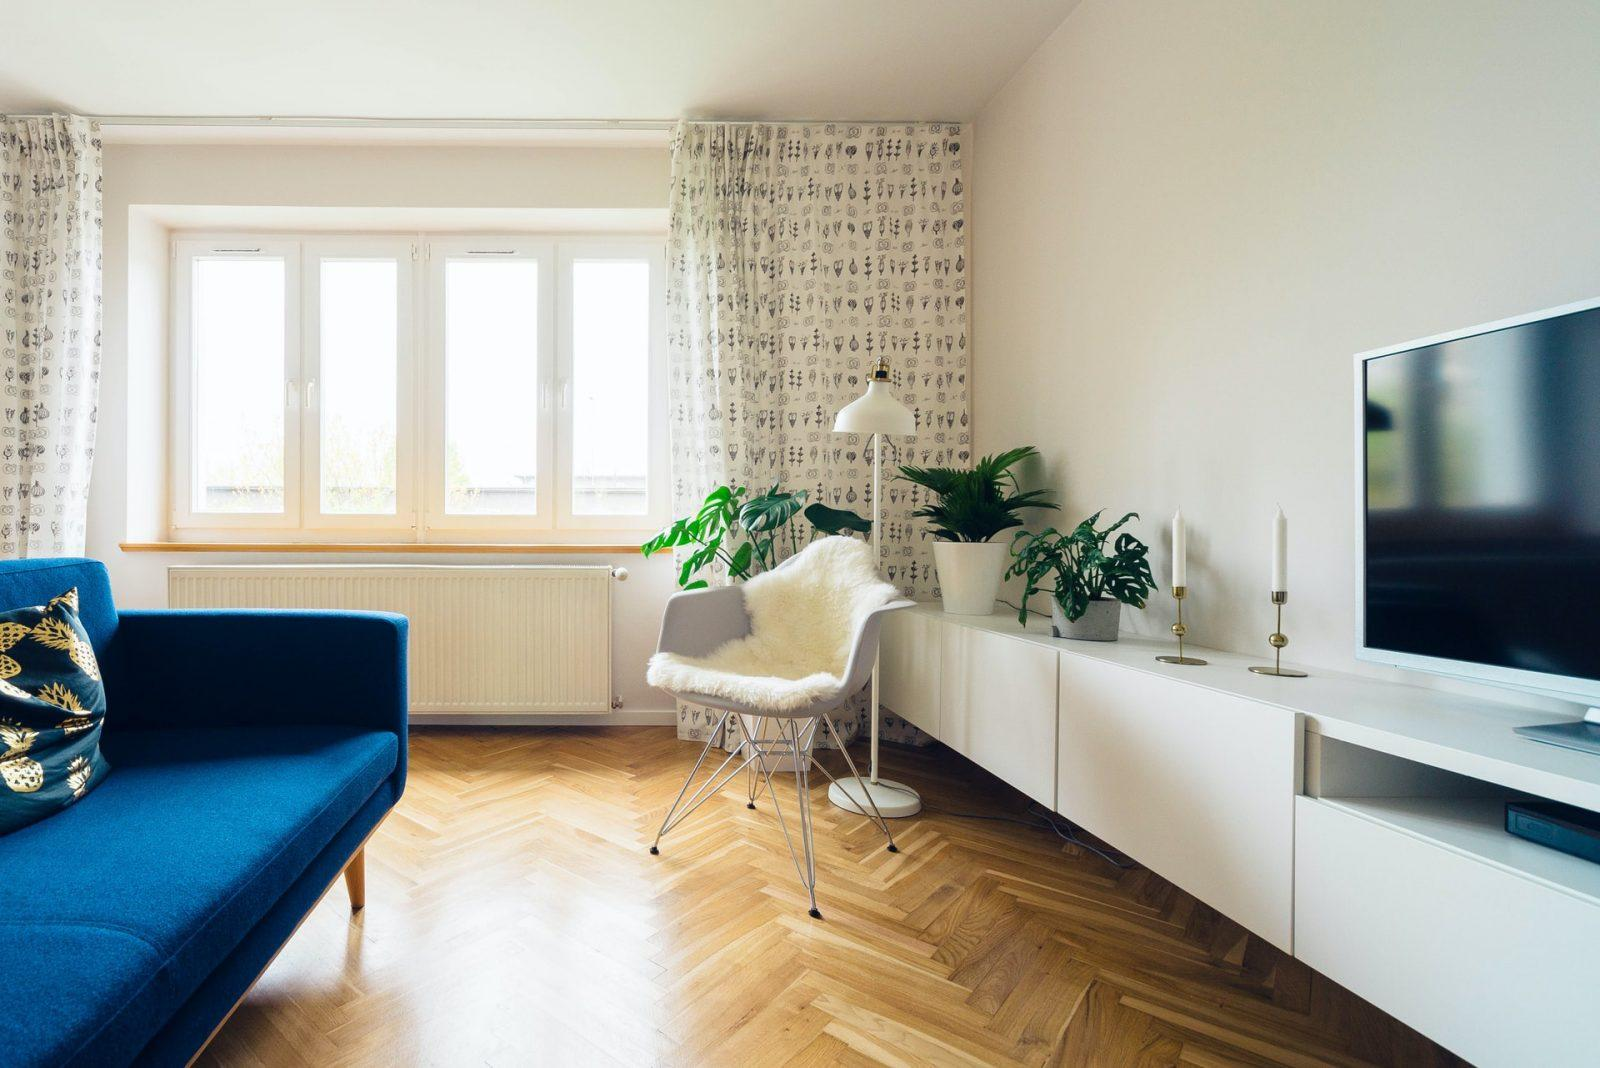 Small estate changes a small step in the right direction